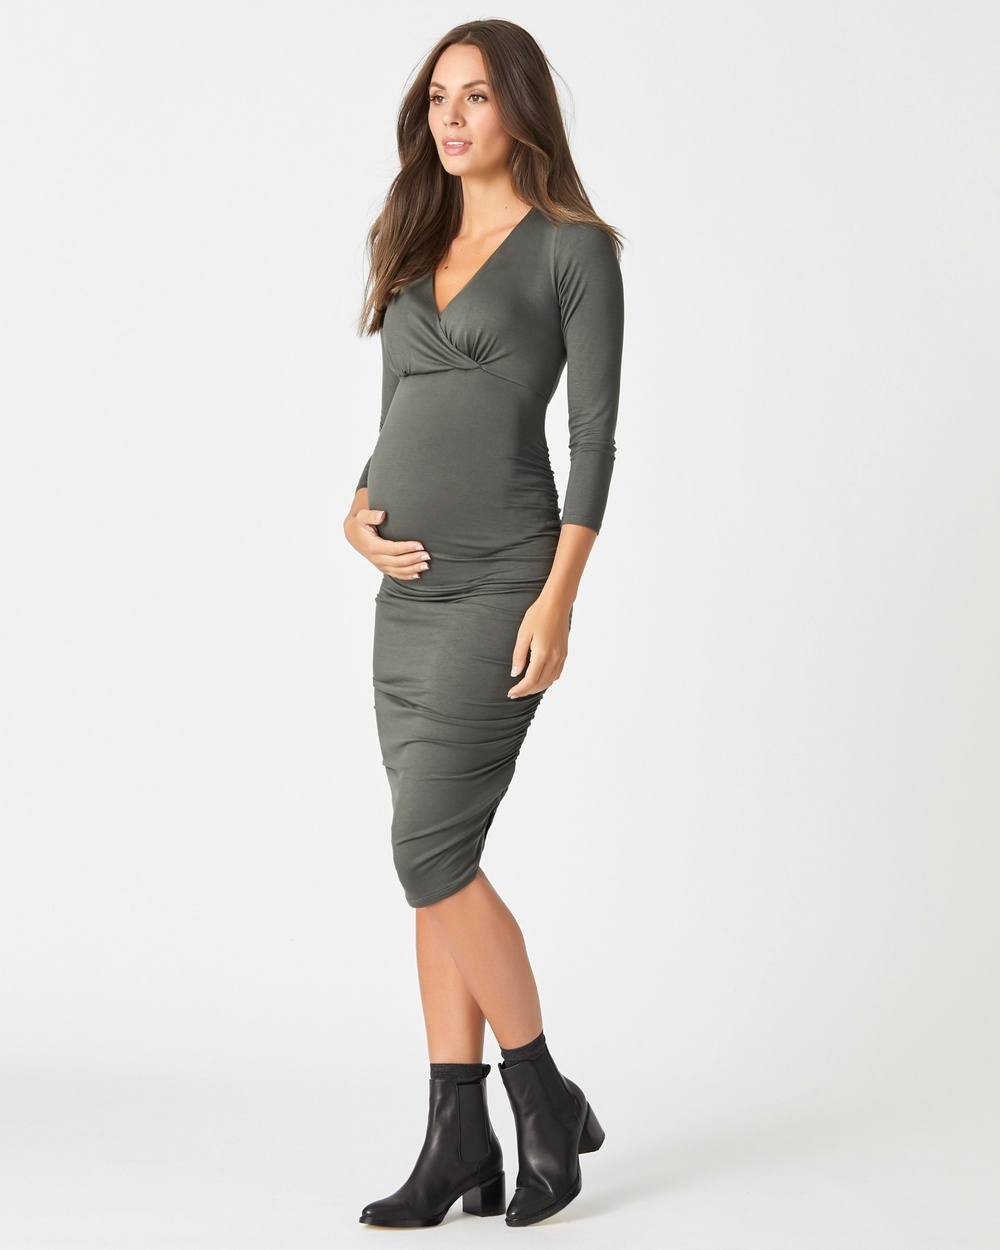 Pea in a Pod Maternity Jemma Crossover Dress Bodycon Dresses Khaki Jemma Crossover Dress